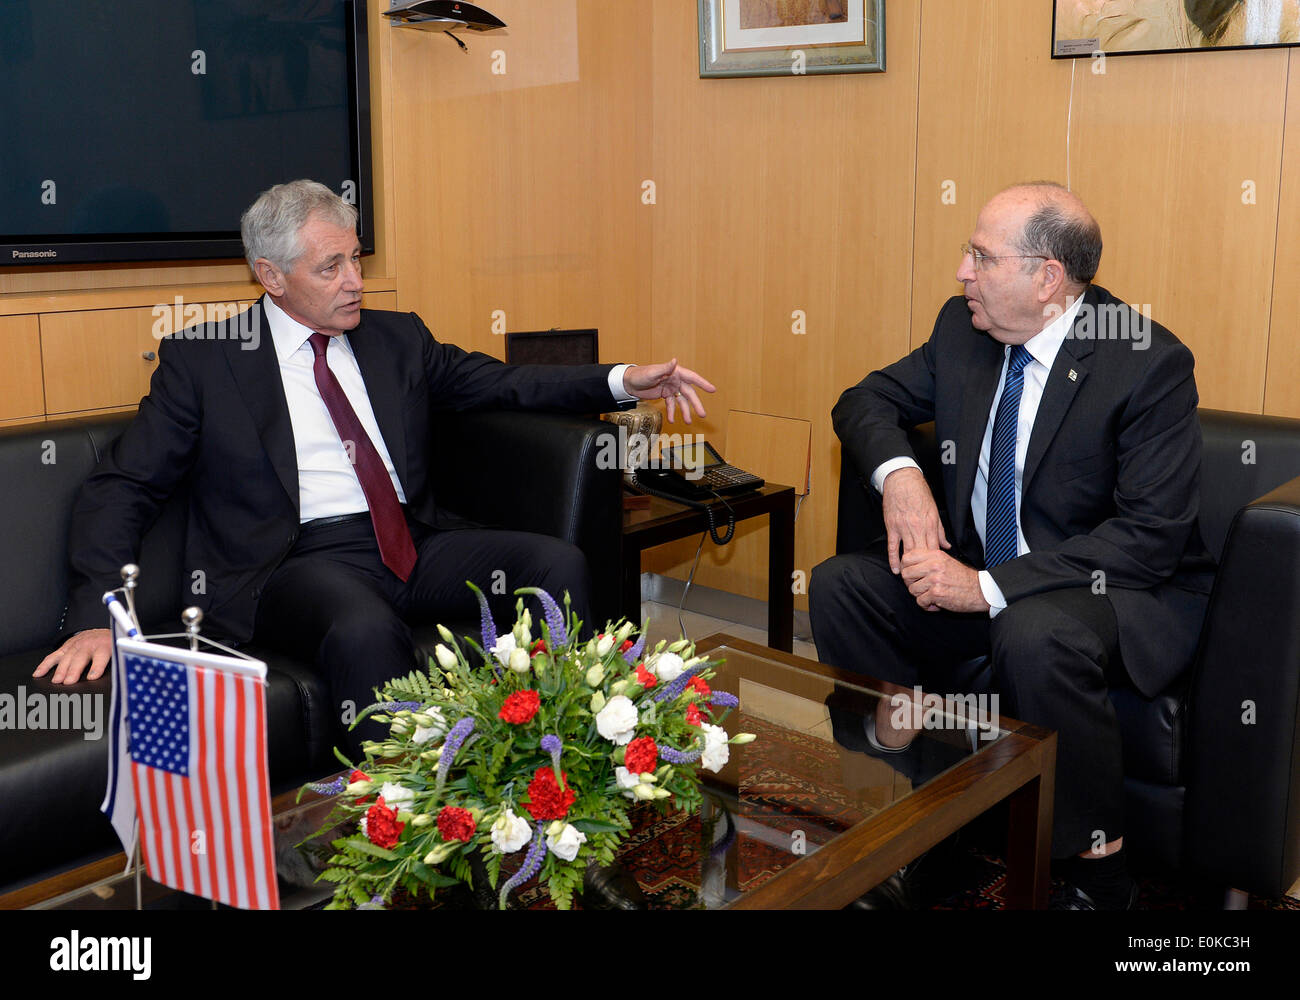 Jerusalem, Israel. 15th May, 2014. Israeli Defense Minister Moshe Ya'alon (R) meets with visiting U.S. Secretary of Defense Chuck Hagel at Israeli Ministry of Defense in Tel Aviv, Israel, on May 15, 2014. U.S. Secretary of Defense Chuck Hagel said on Thursday that he could not validate a recent media report of alleged Israeli spying in his country. Credit:  U.S. Embassy to Israel/Matty Stern/Xinhua/Alamy Live News - Stock Image